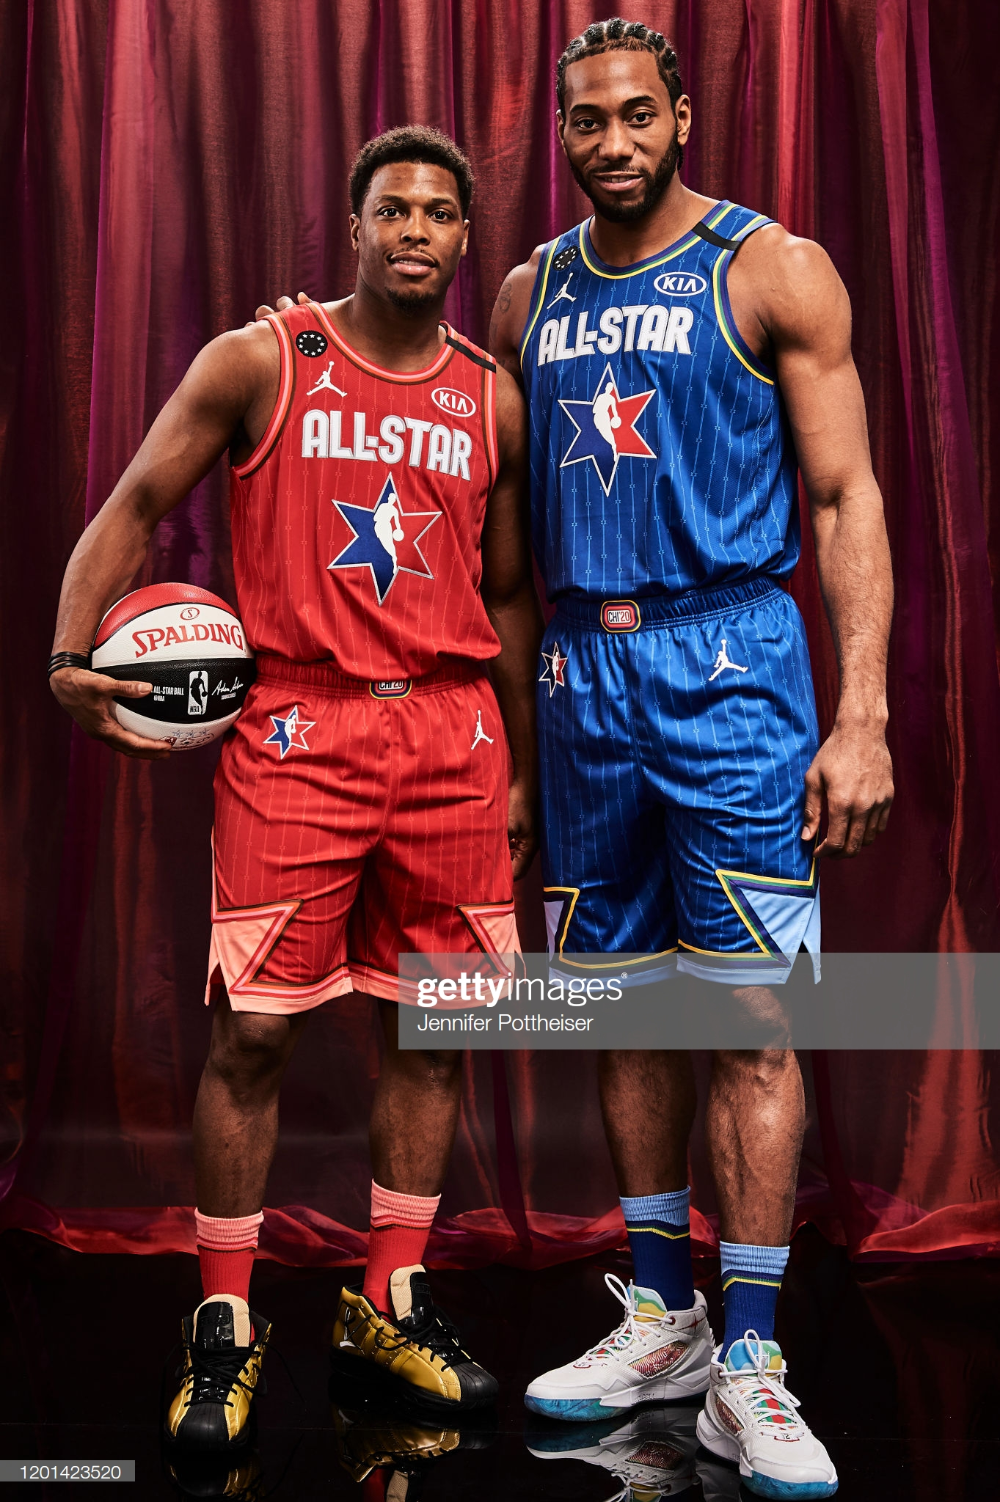 Kyle Lowry Of Team Giannas And Kawhi Leonard Of Team Lebron Pose For In 2020 Kyle Lowry Nba Players New Balance Outfit